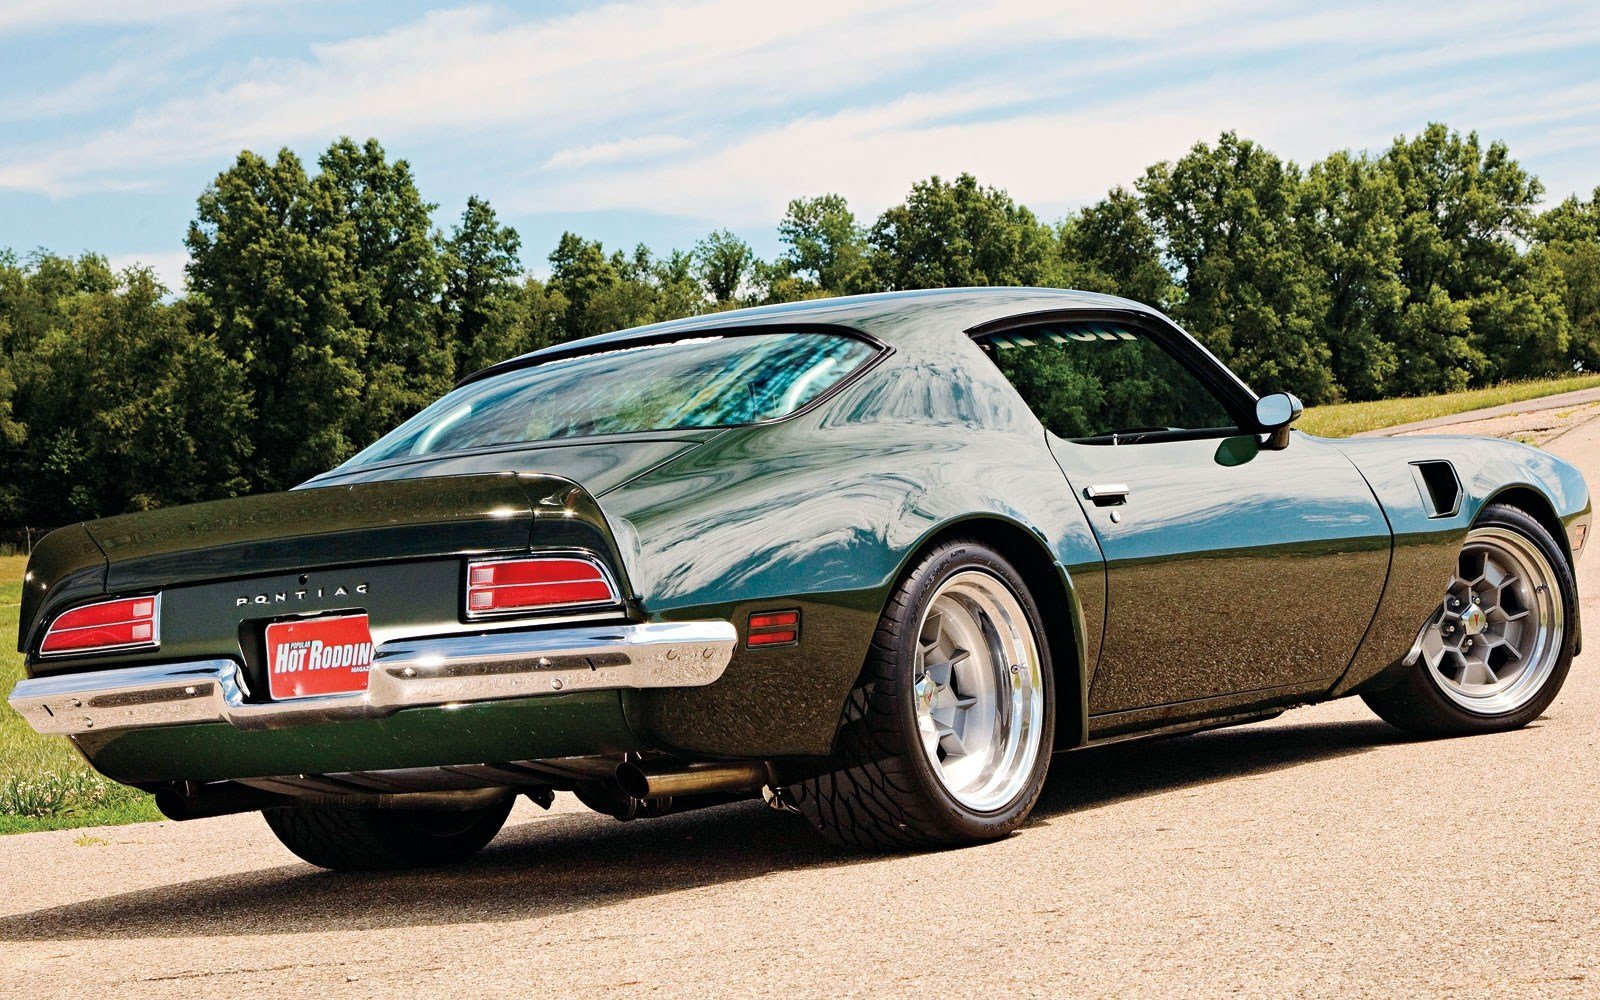 New 1973 Pontiac Trans Am Wallpaper And Background Image On This Month